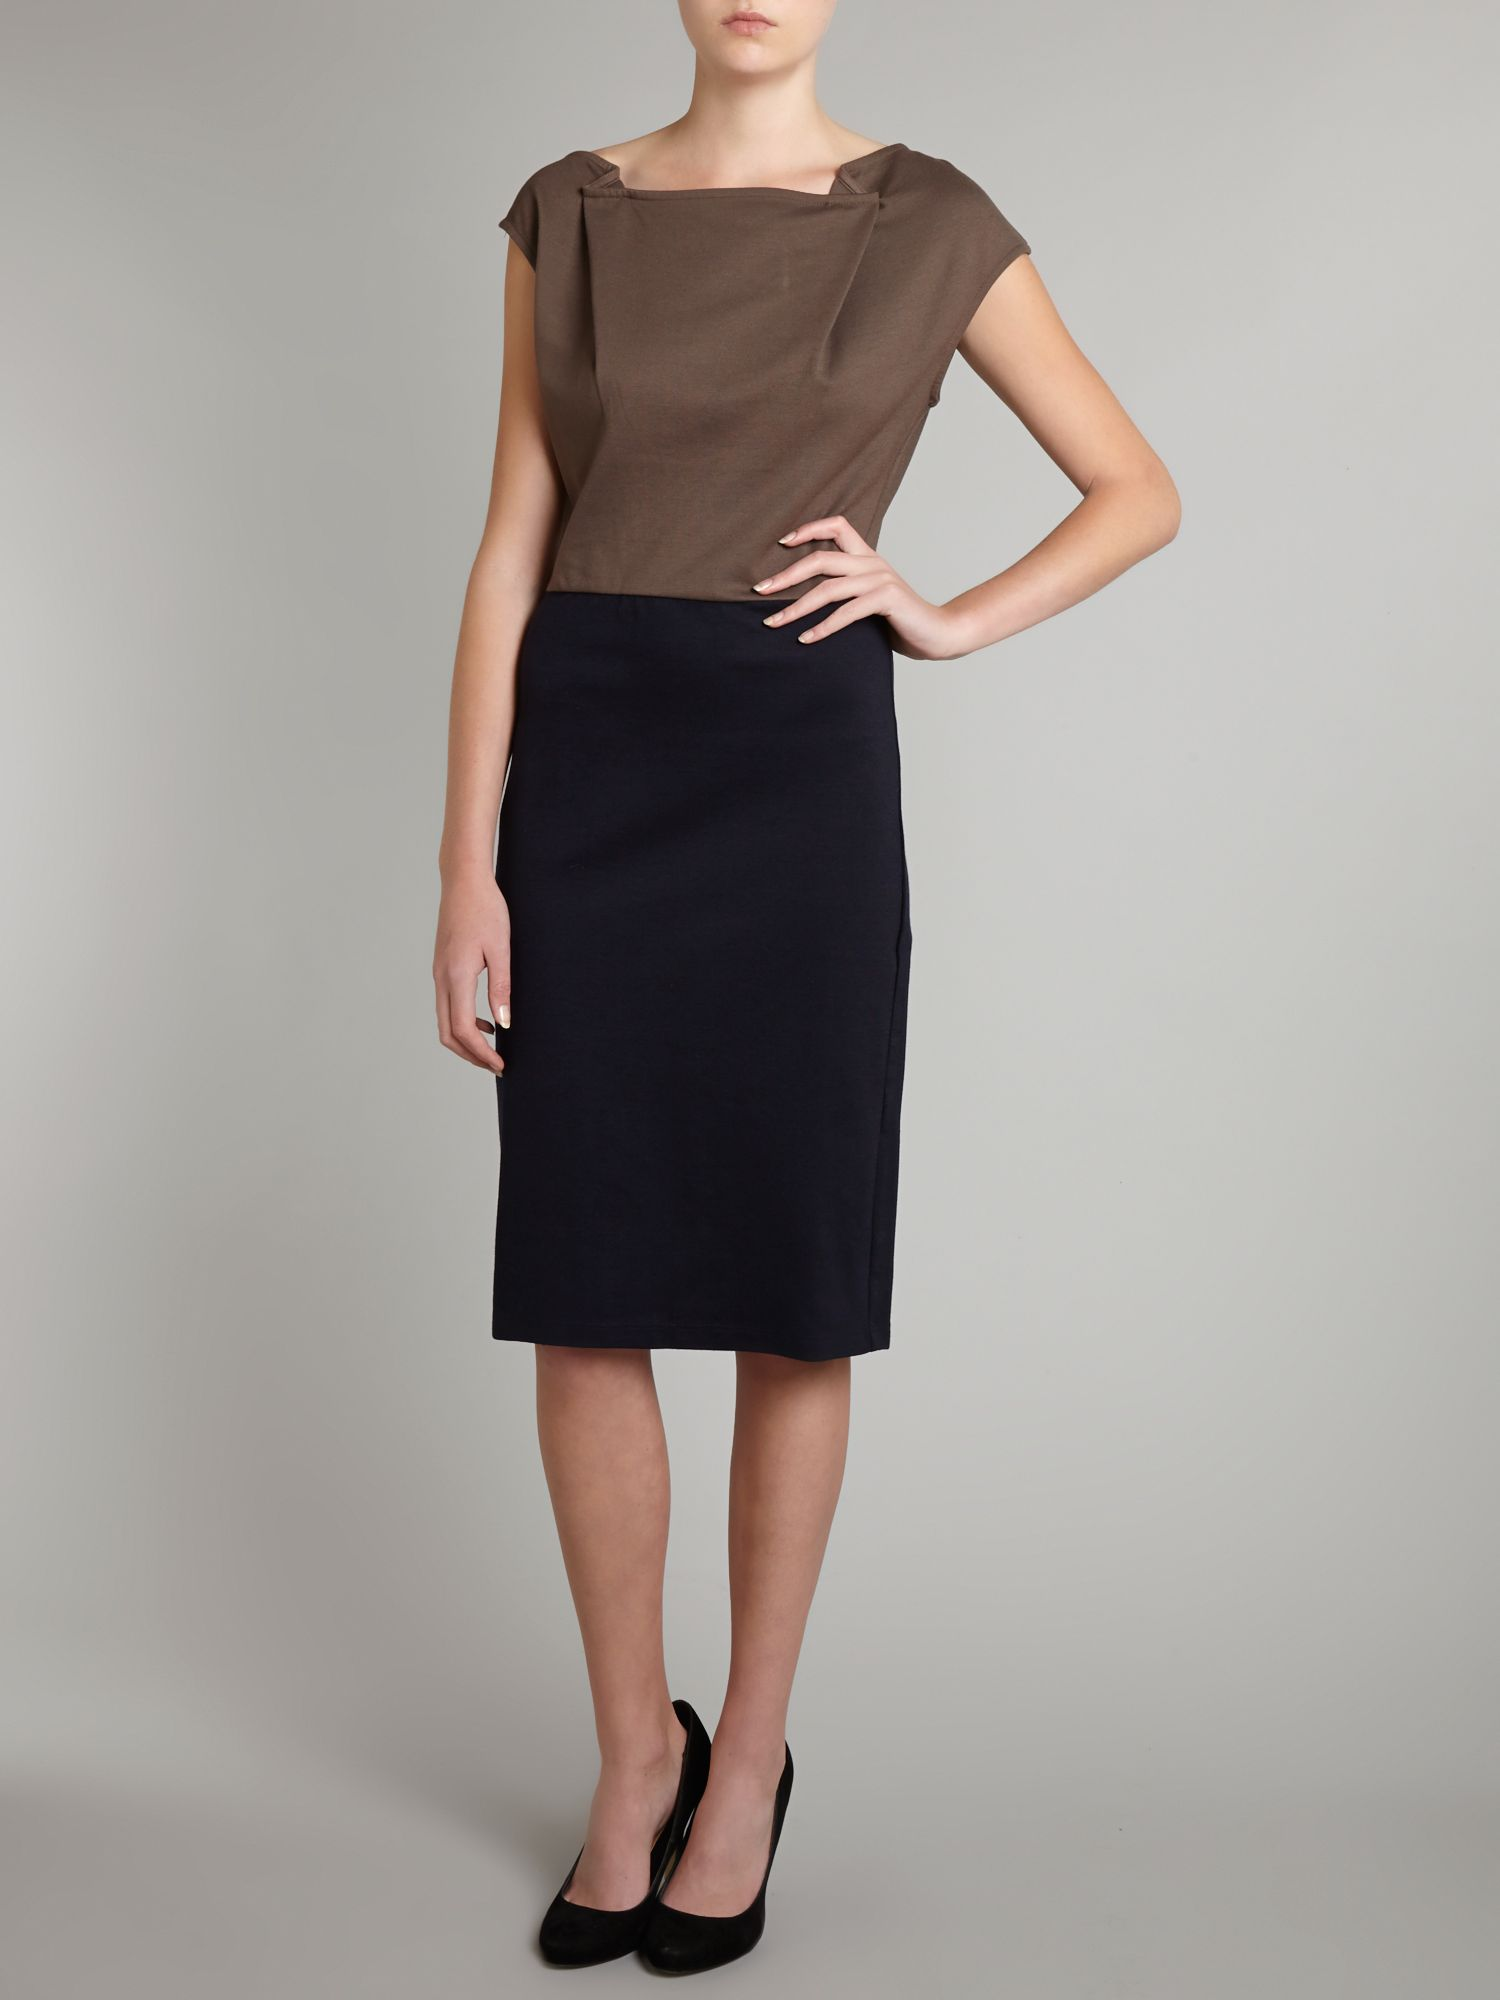 AJ pleat neck pencil dress